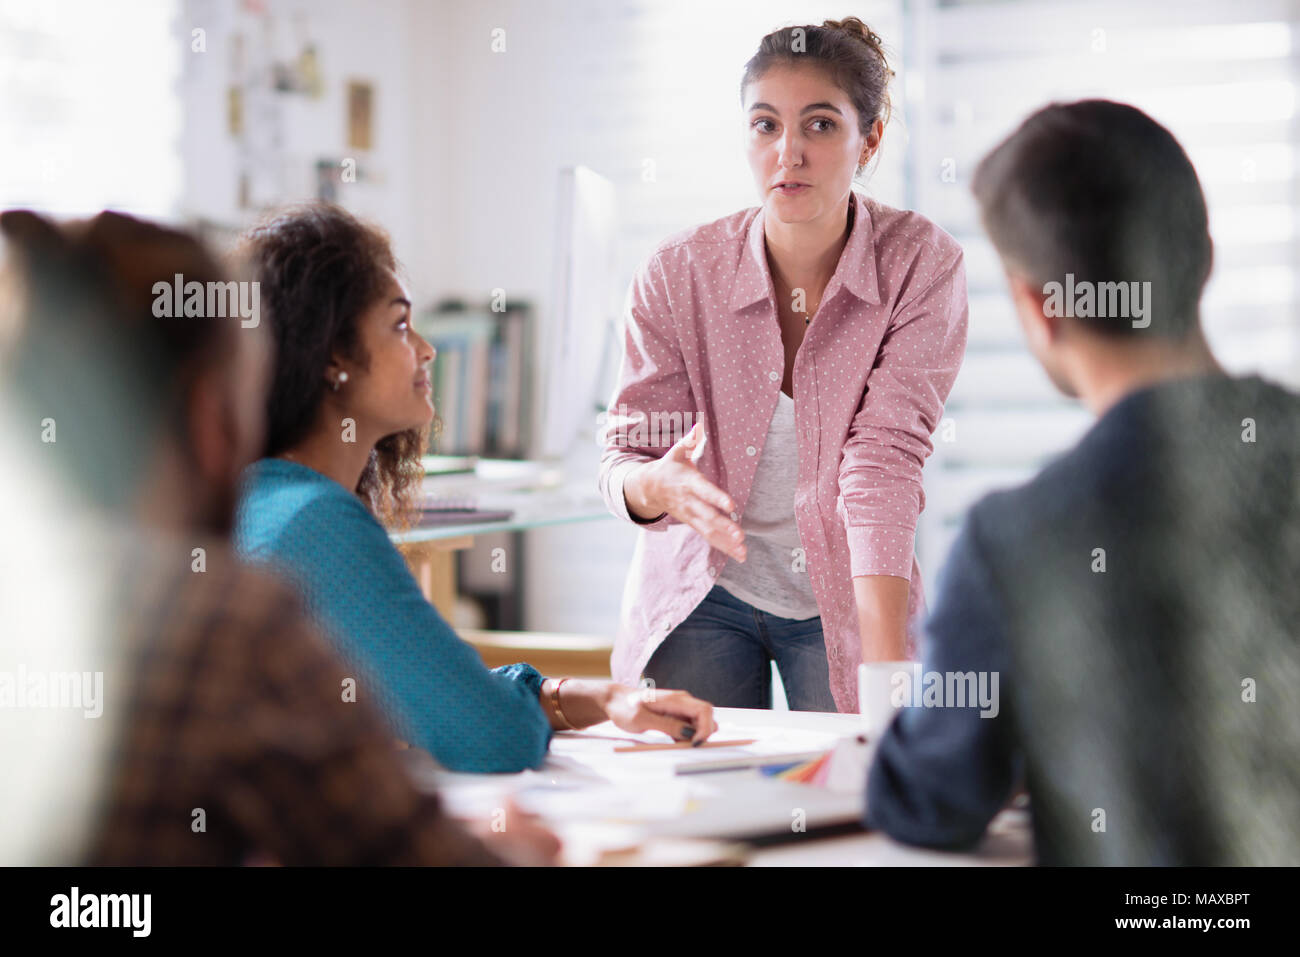 meeting office. young woman presents her project to her colleagues - Stock Image